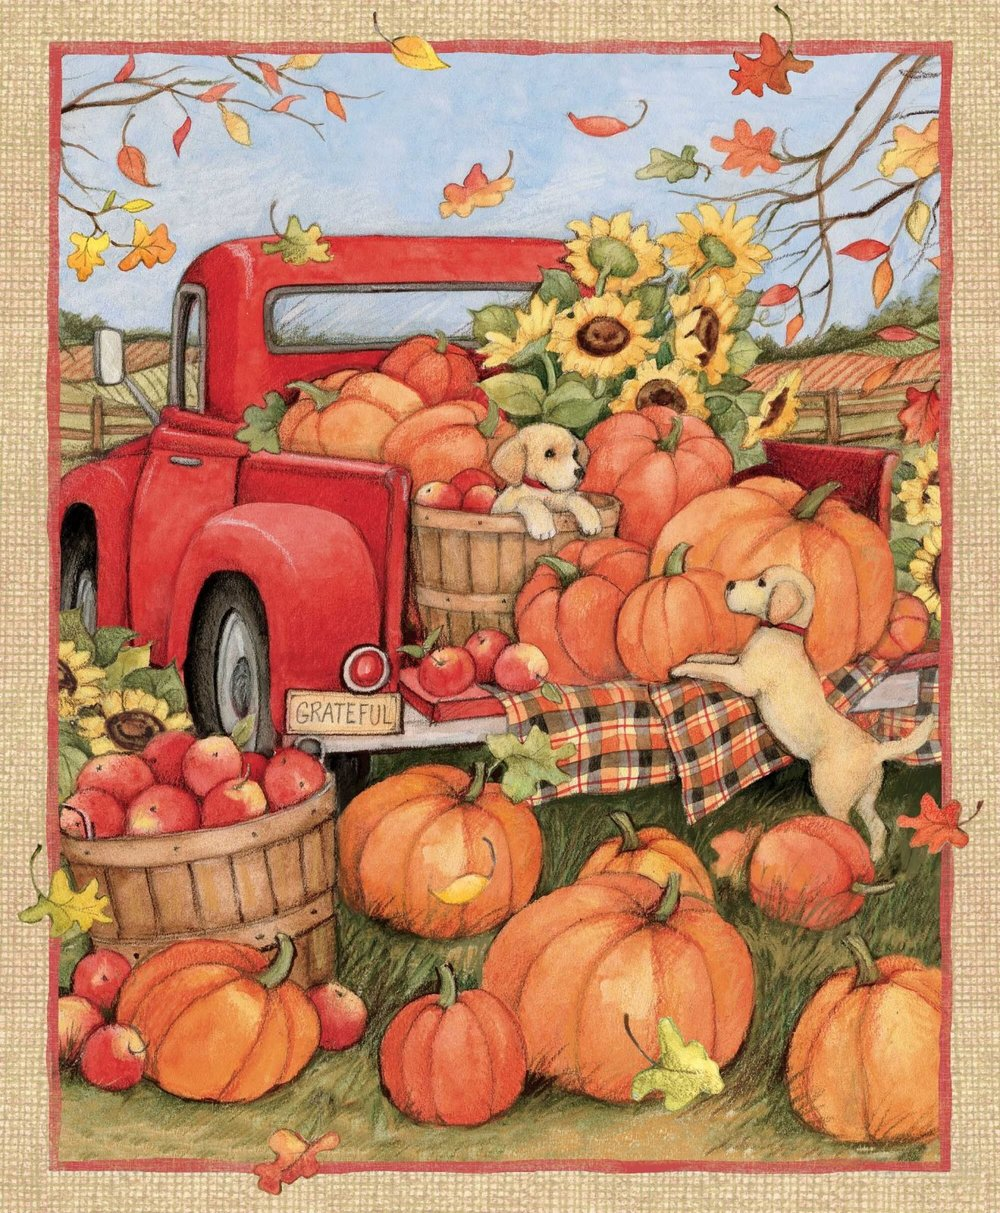 Red Truck with Harvest Pumpkins and Puppies by Susan Wingate for Springs